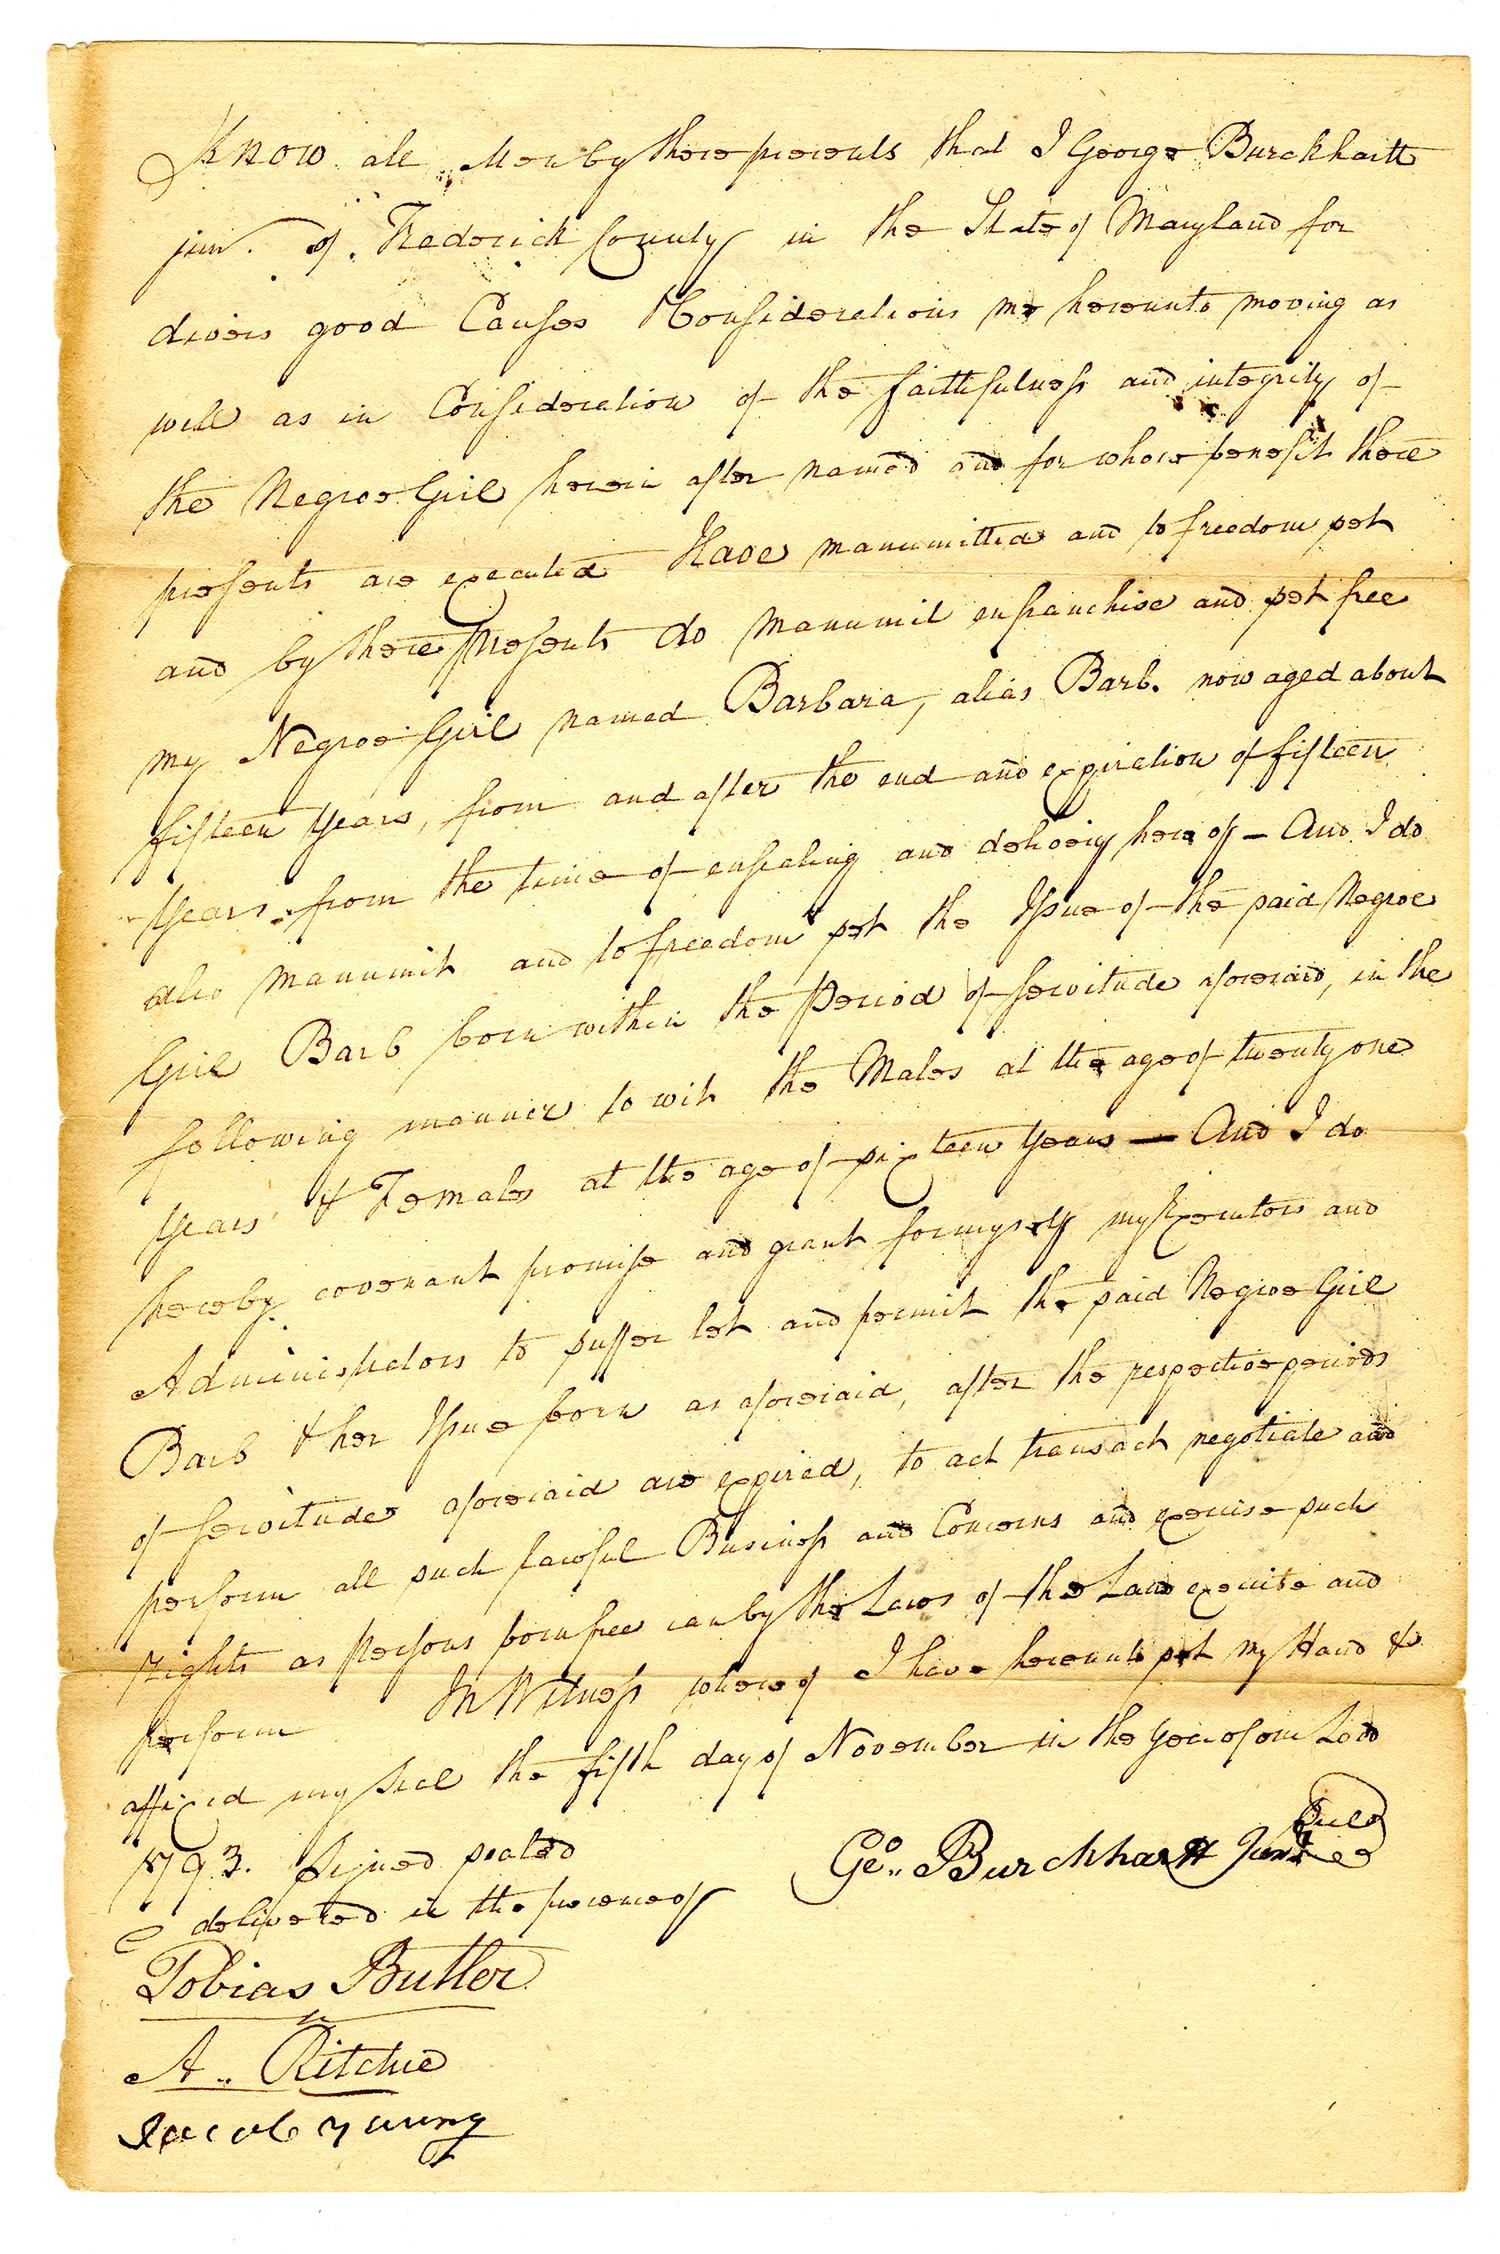 an introduction to the history of slavery in maryland From sunrise to sunset: beneath the underground interns' essays on slave life in maryland part of the internship program at the maryland state archives was structured towards original research on how ex-slaves depicted their lives in maryland.